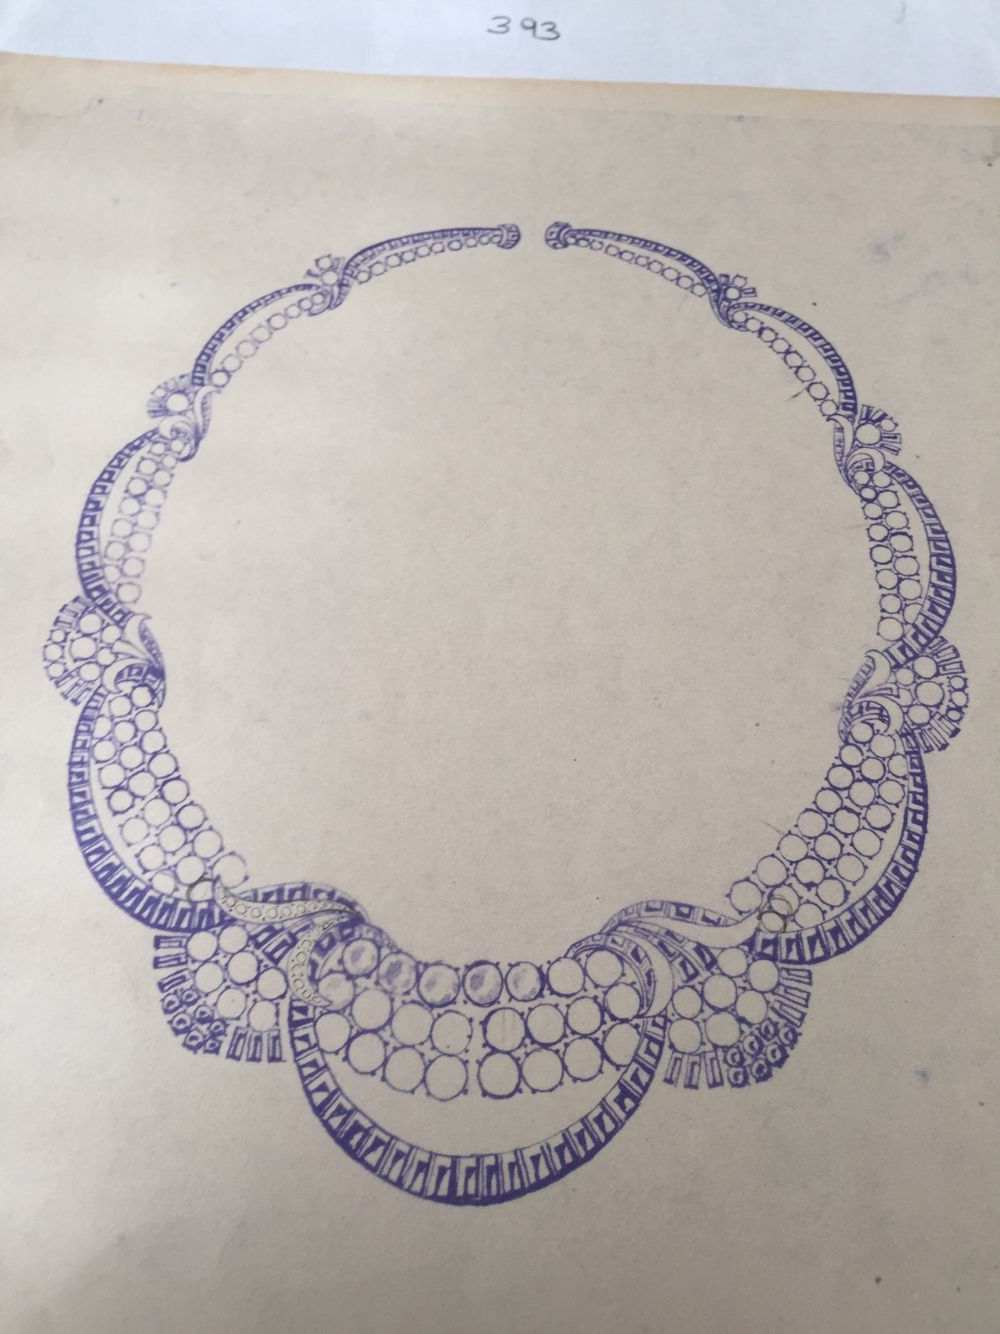 An art deco necklace sketch by the legendary jewellery designer